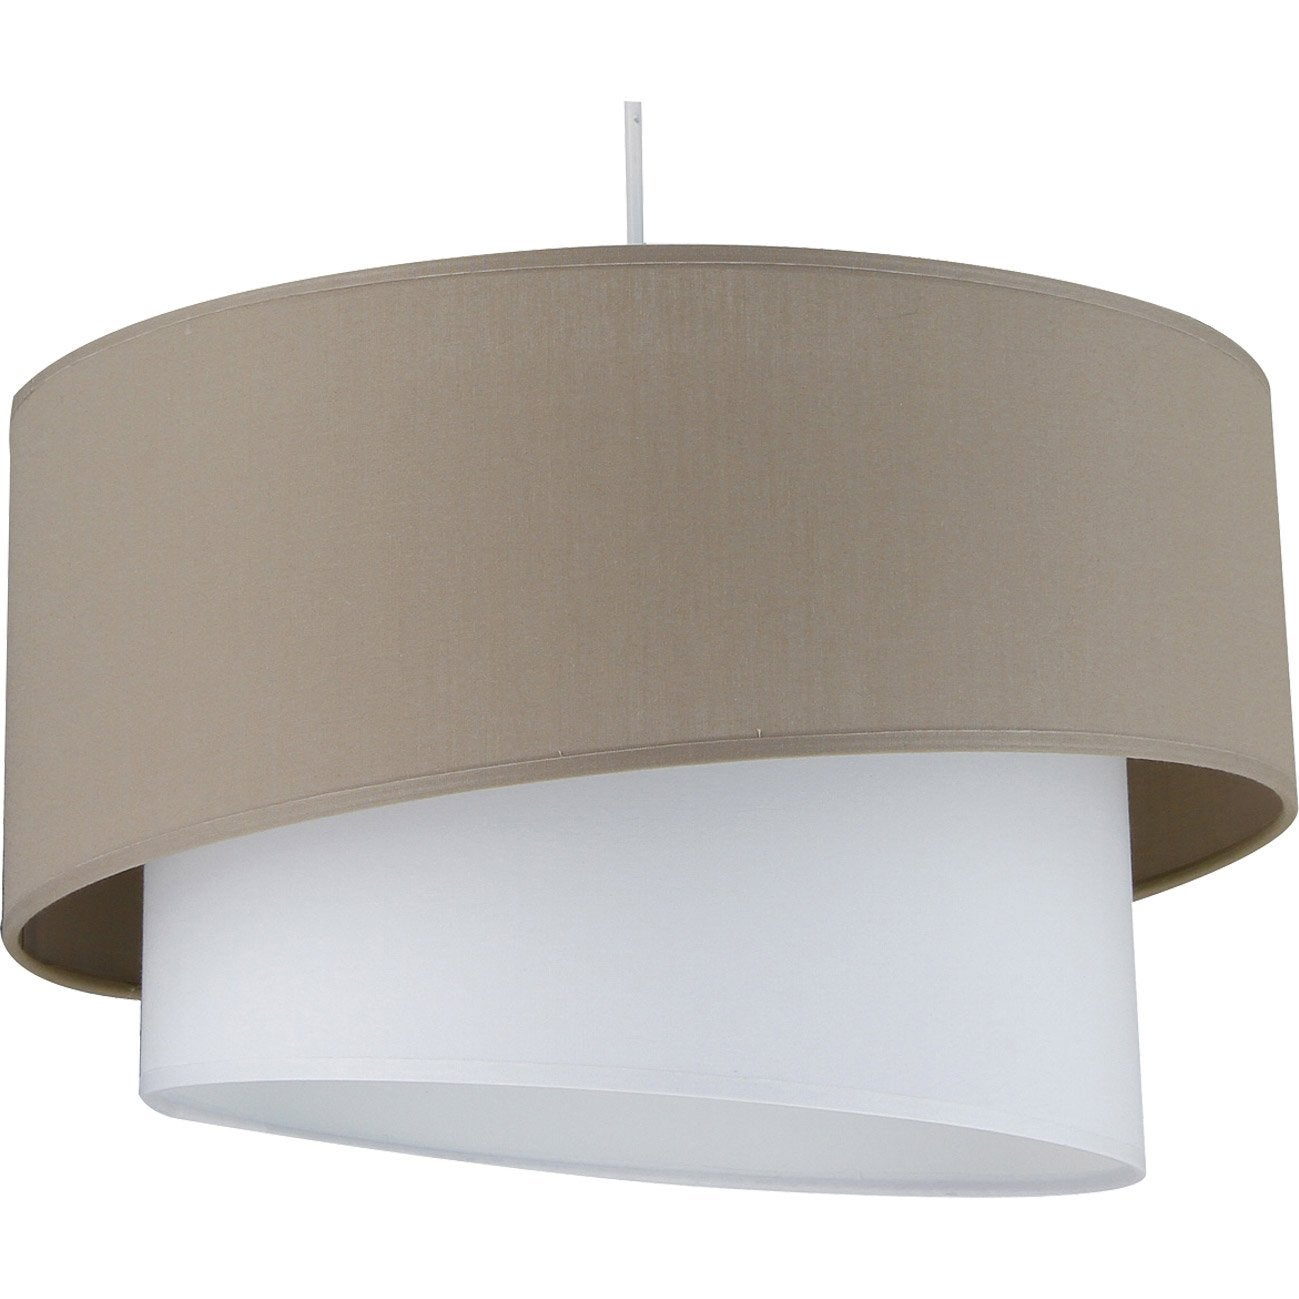 Suspension, e27 design Ionos coton brun taupe n°3 1 x 60 W METROPOLIGHT